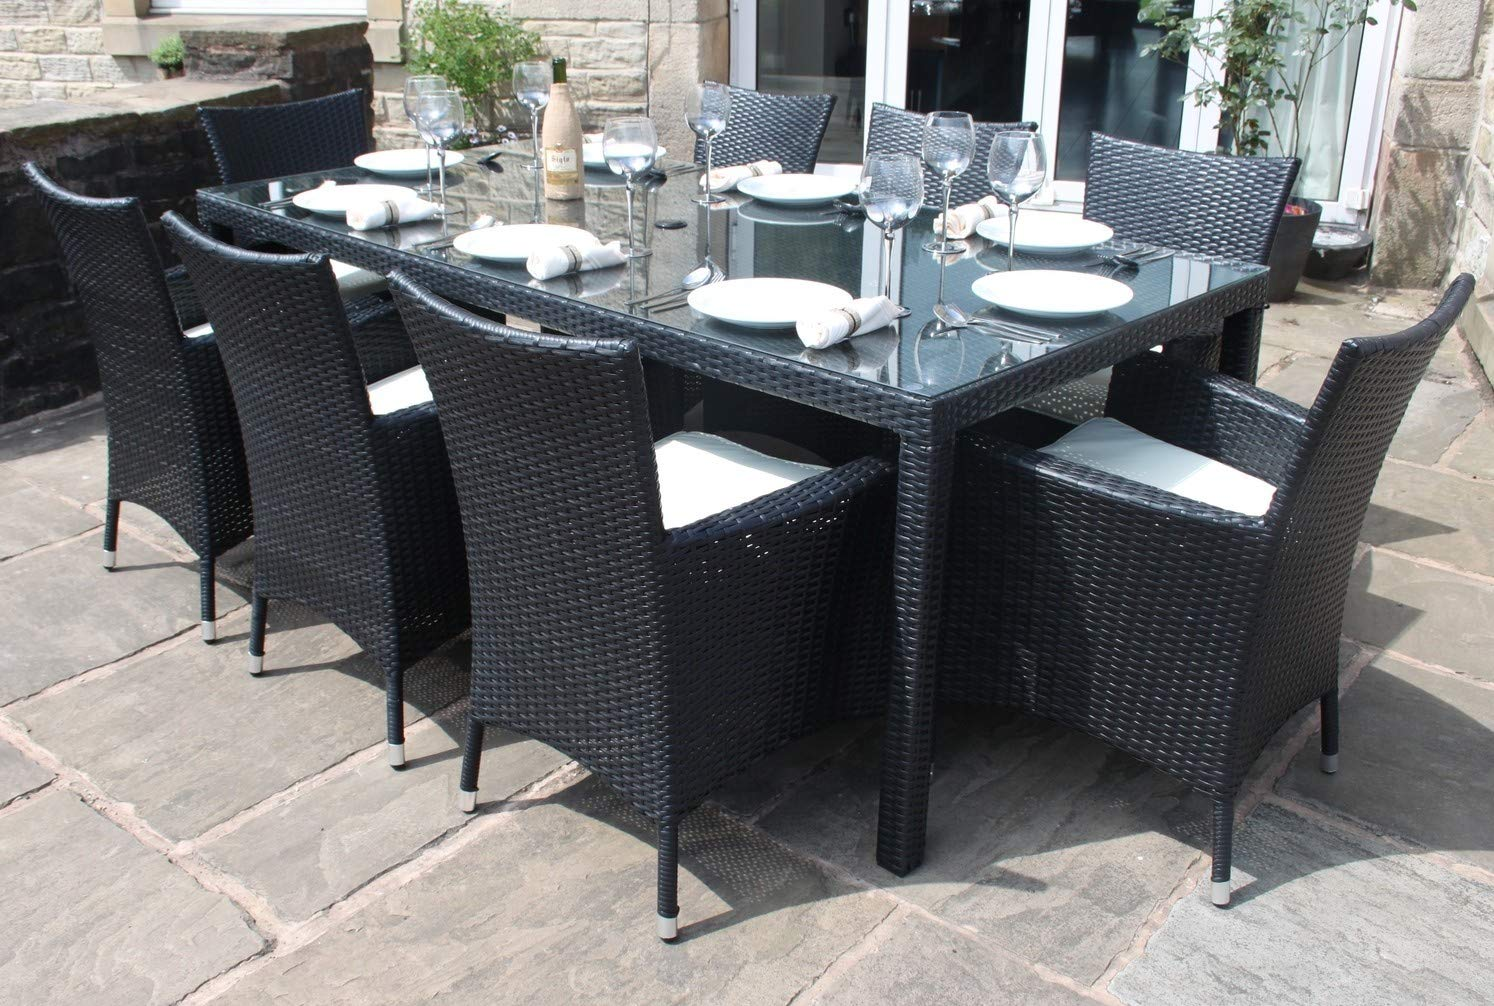 e1ee06b327 Rattan Dining Furniture Set| 8 Seater |Dining Table + 8 Chairs | Rattan  Furniture (Black): Amazon.co.uk: Garden & Outdoors